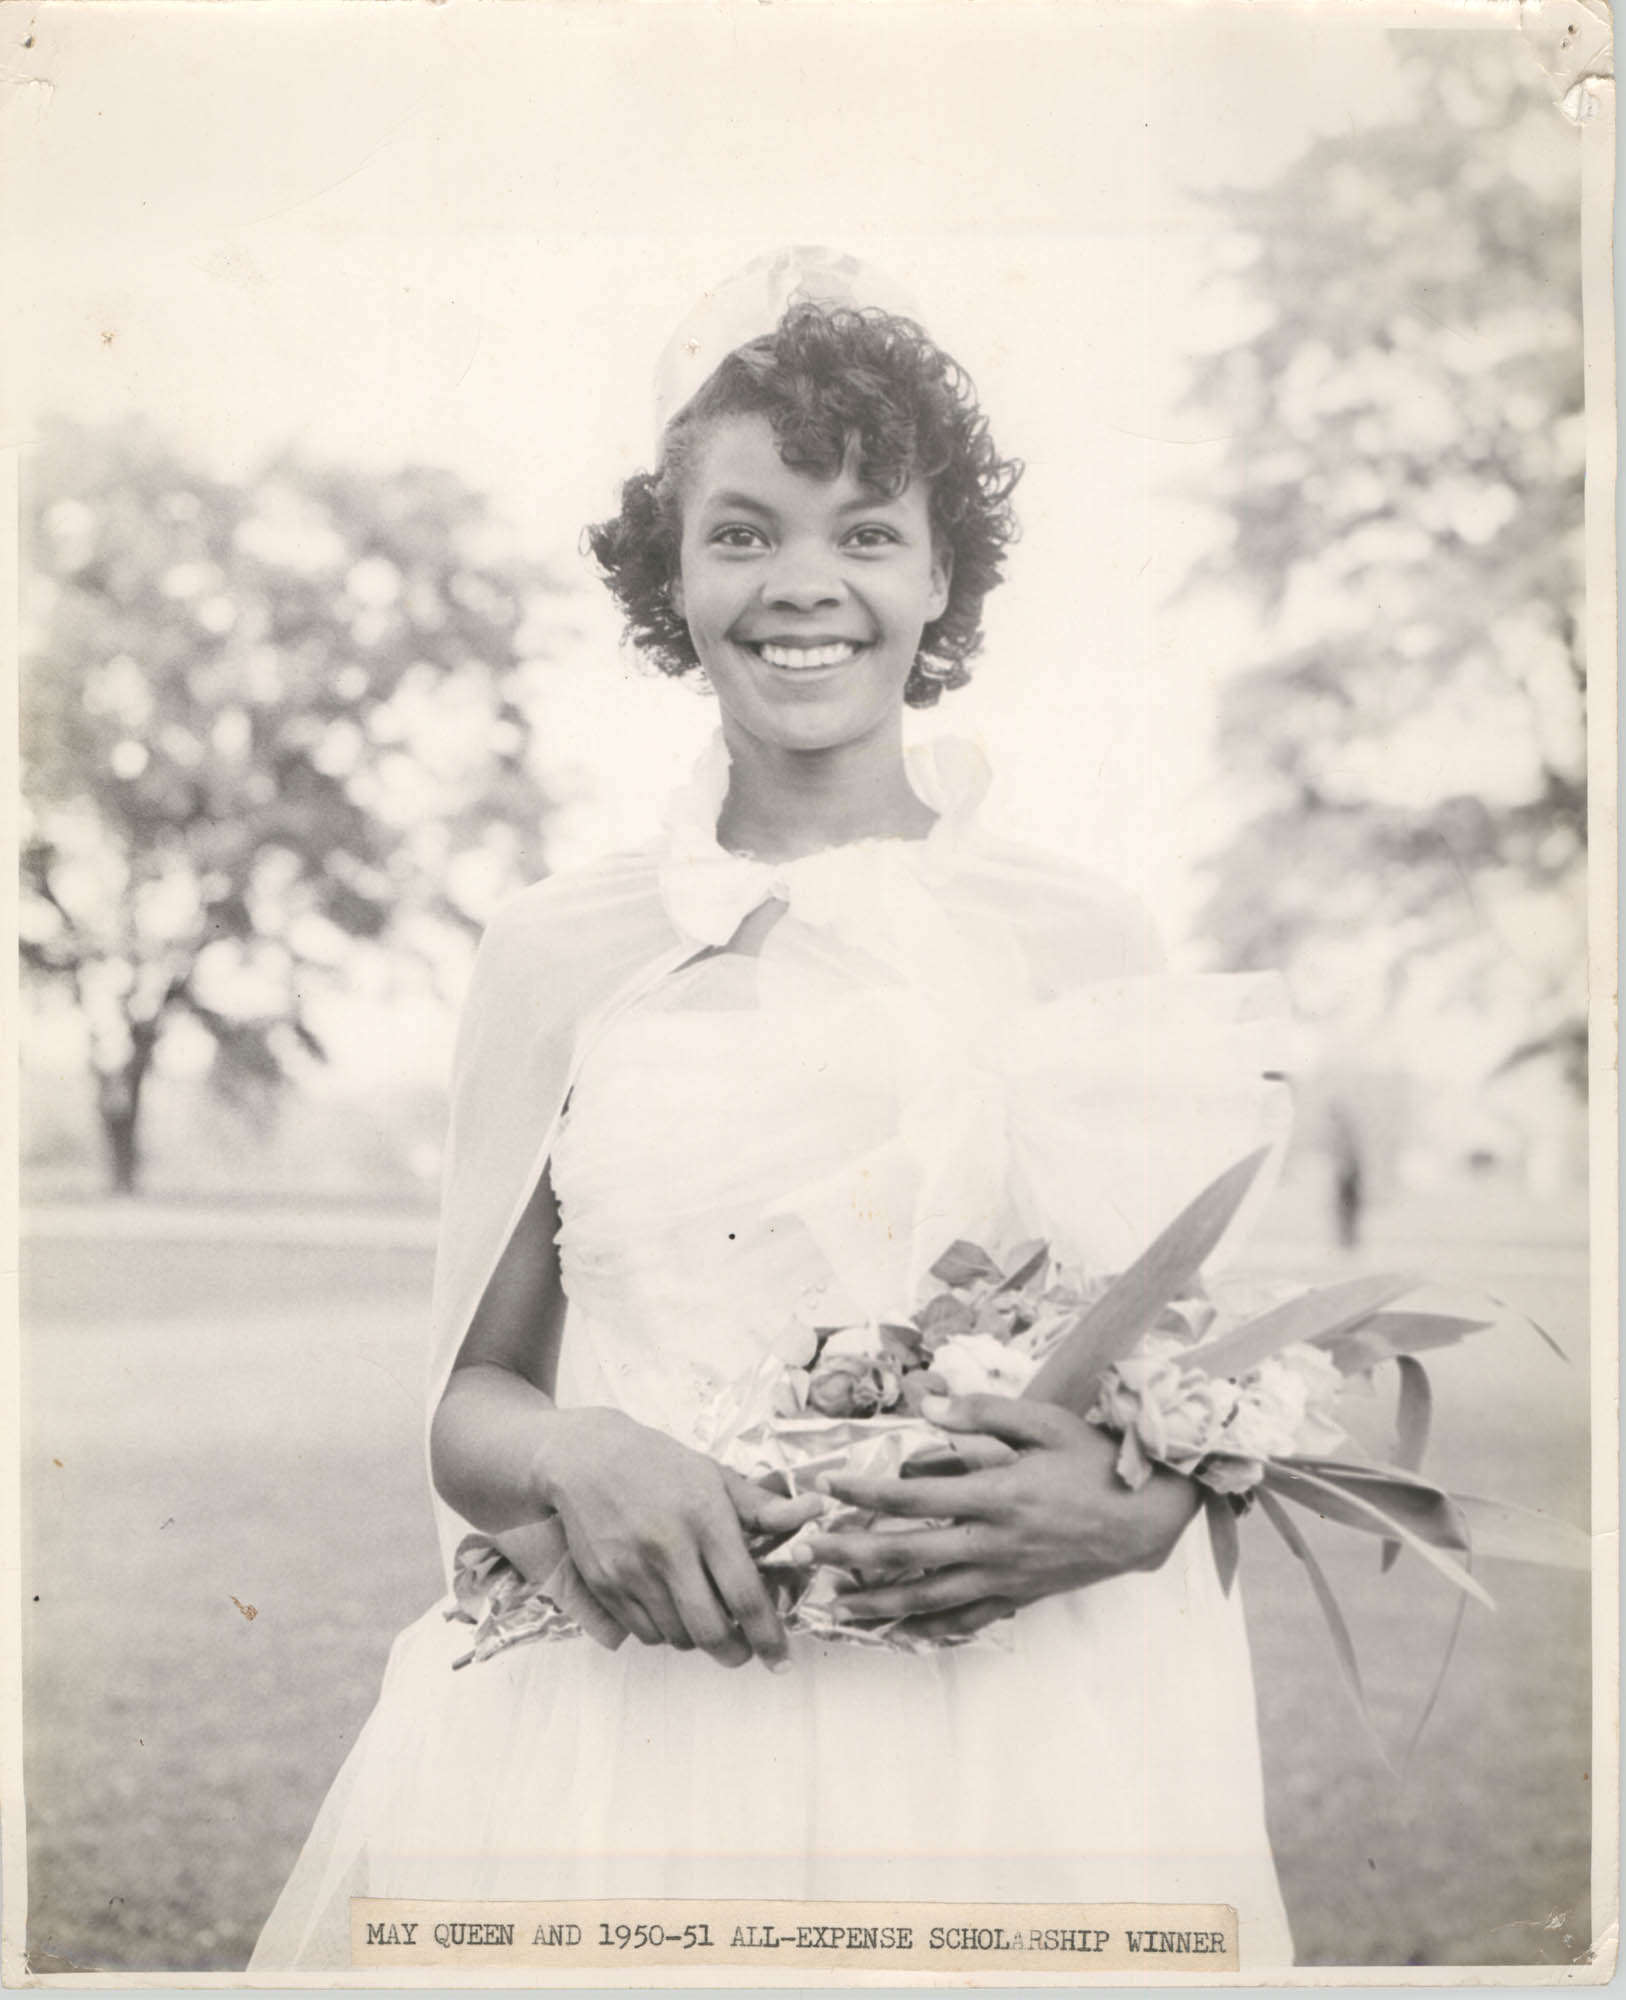 Photograph of May Queen and 1950-51 All-Expense Scholarship Winner at Talladega College